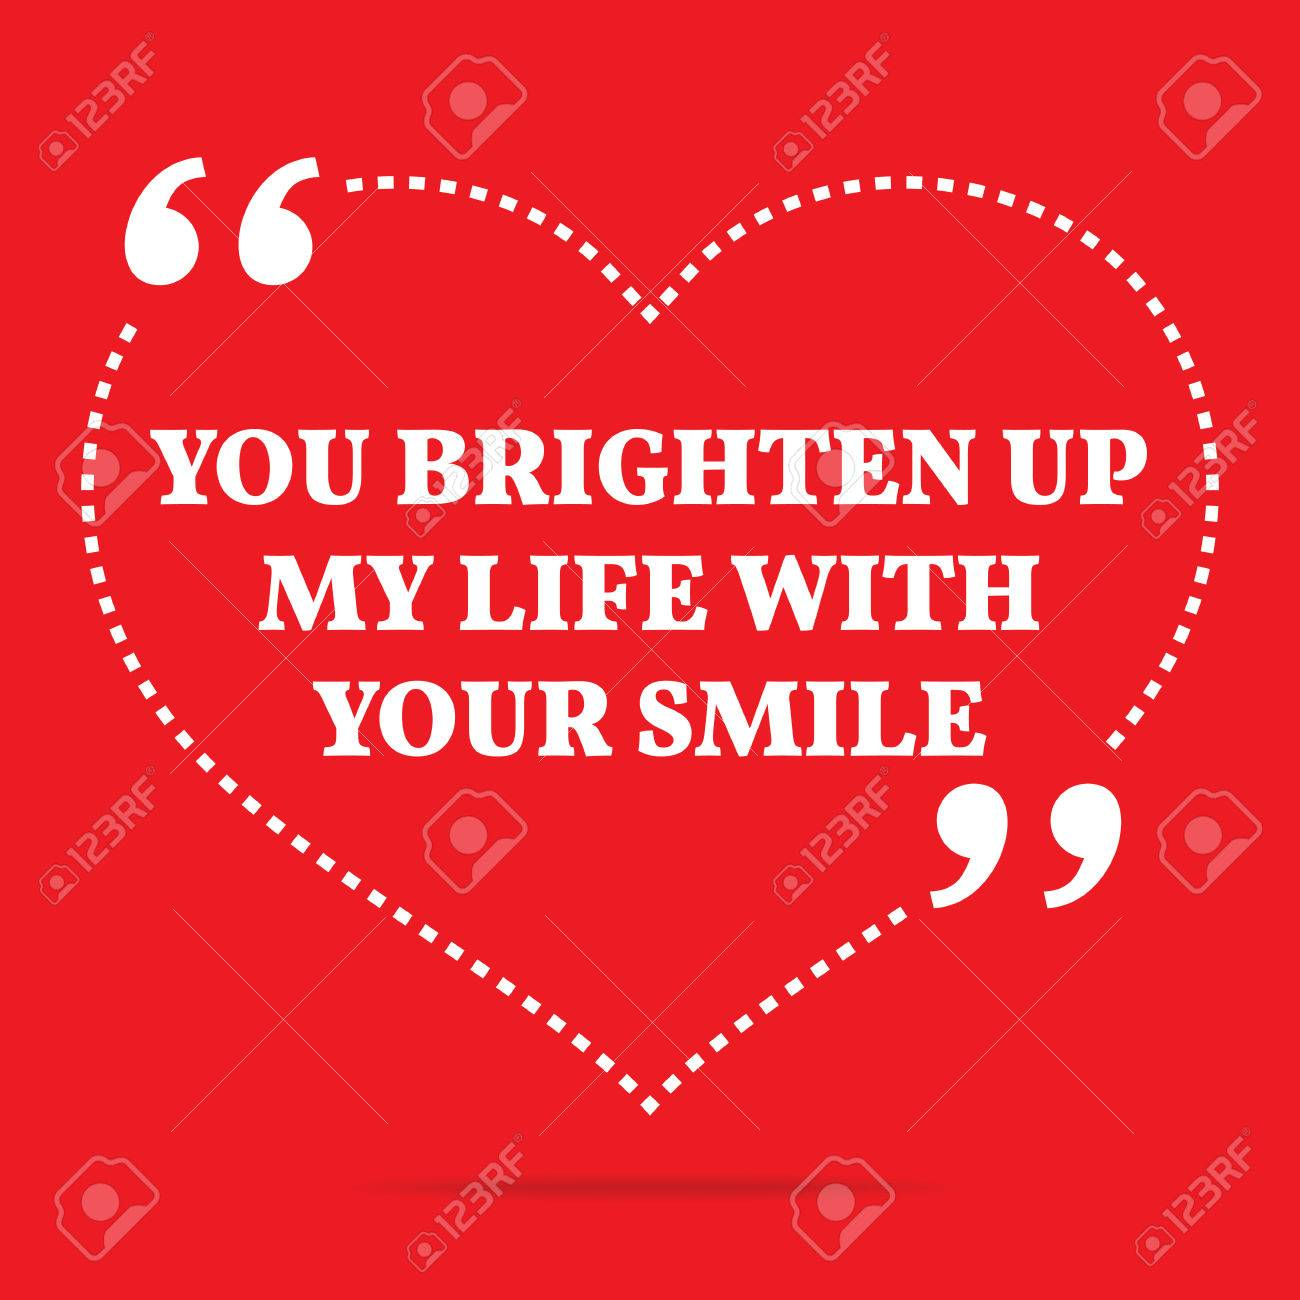 Inspirational Love Quote You Brighten Up My Life With Your Smile